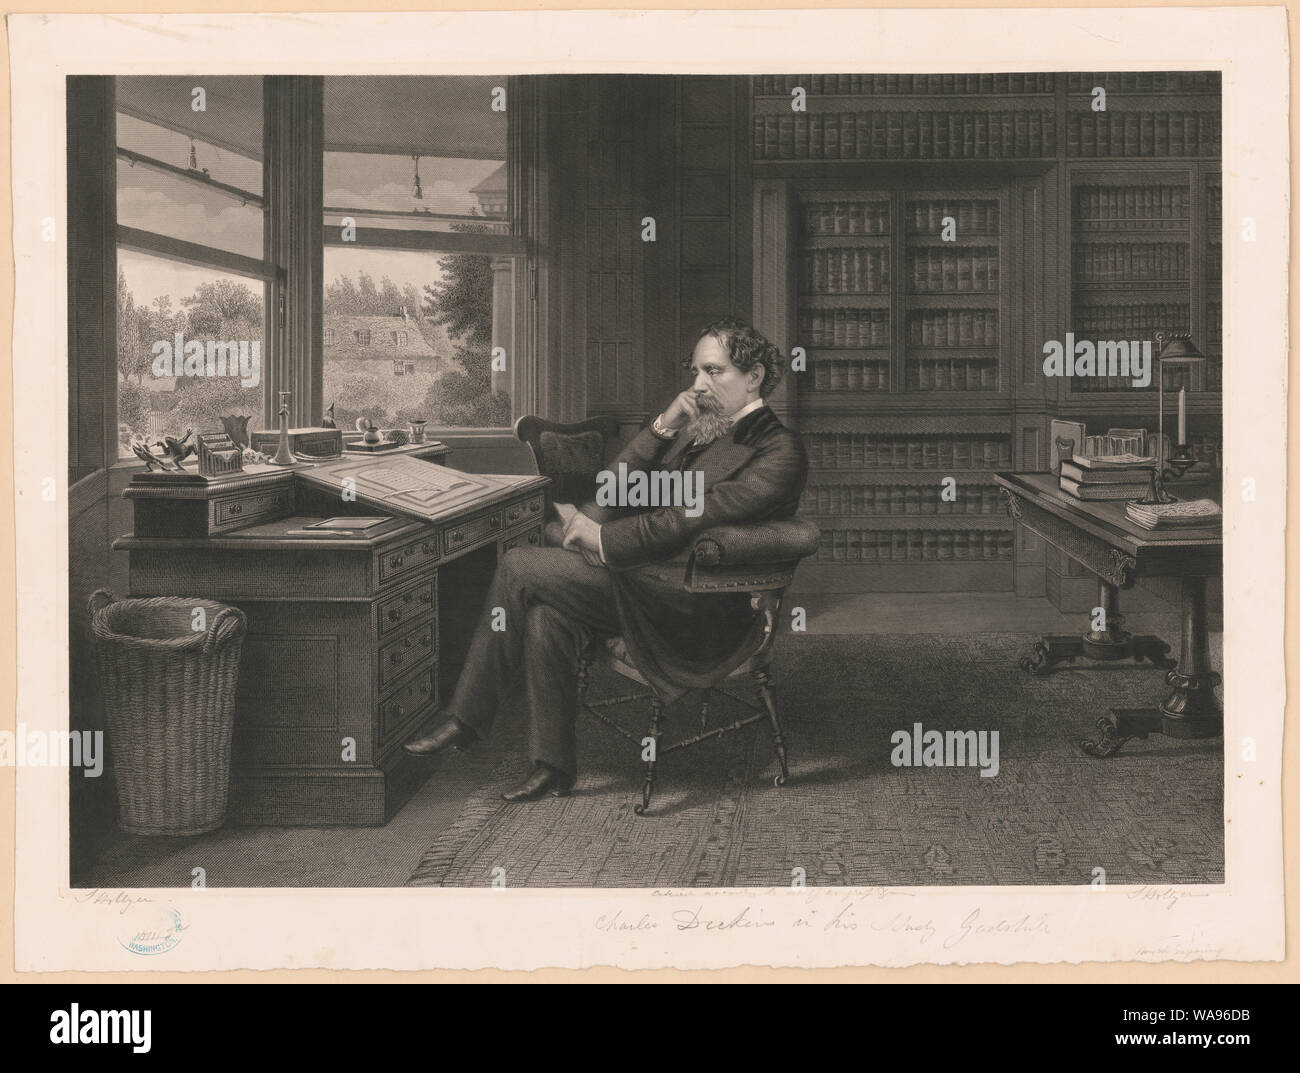 Charles Dickens in his study at Gadshill / S. Hollyer. Stock Photo